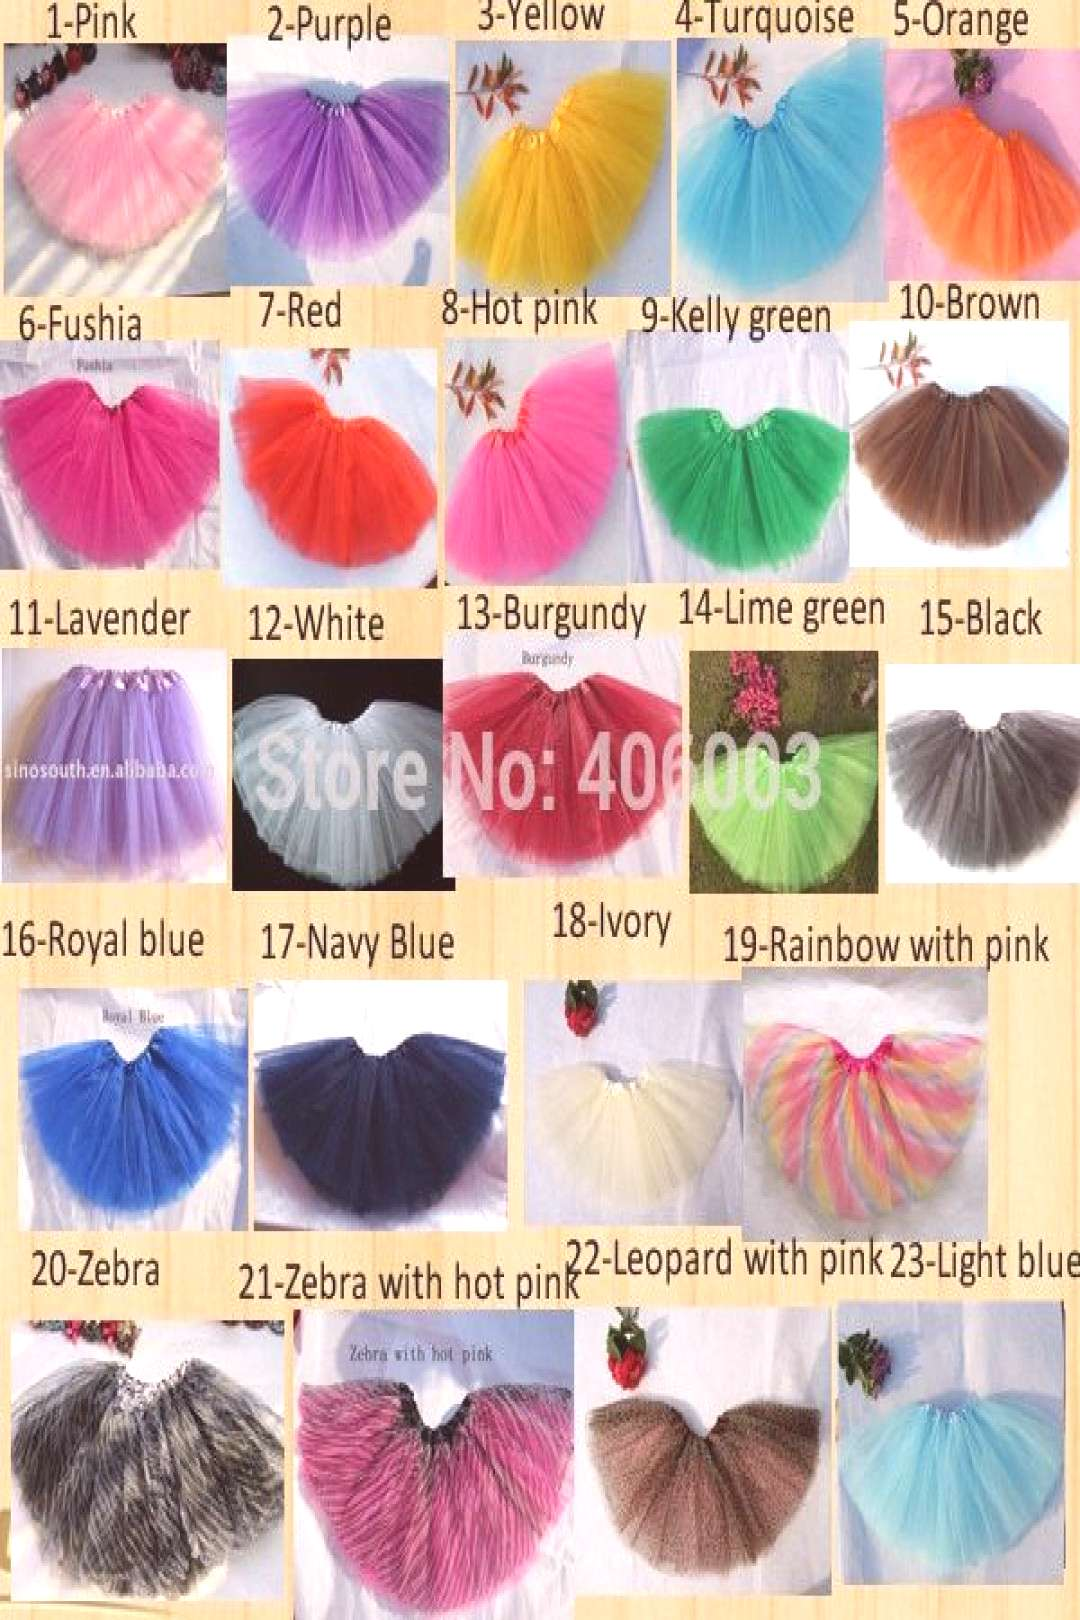 Wholesale Baby Infant Tutu Skirt Kids Toddler Tulle Skirts Free Shipping - Buy it Now!